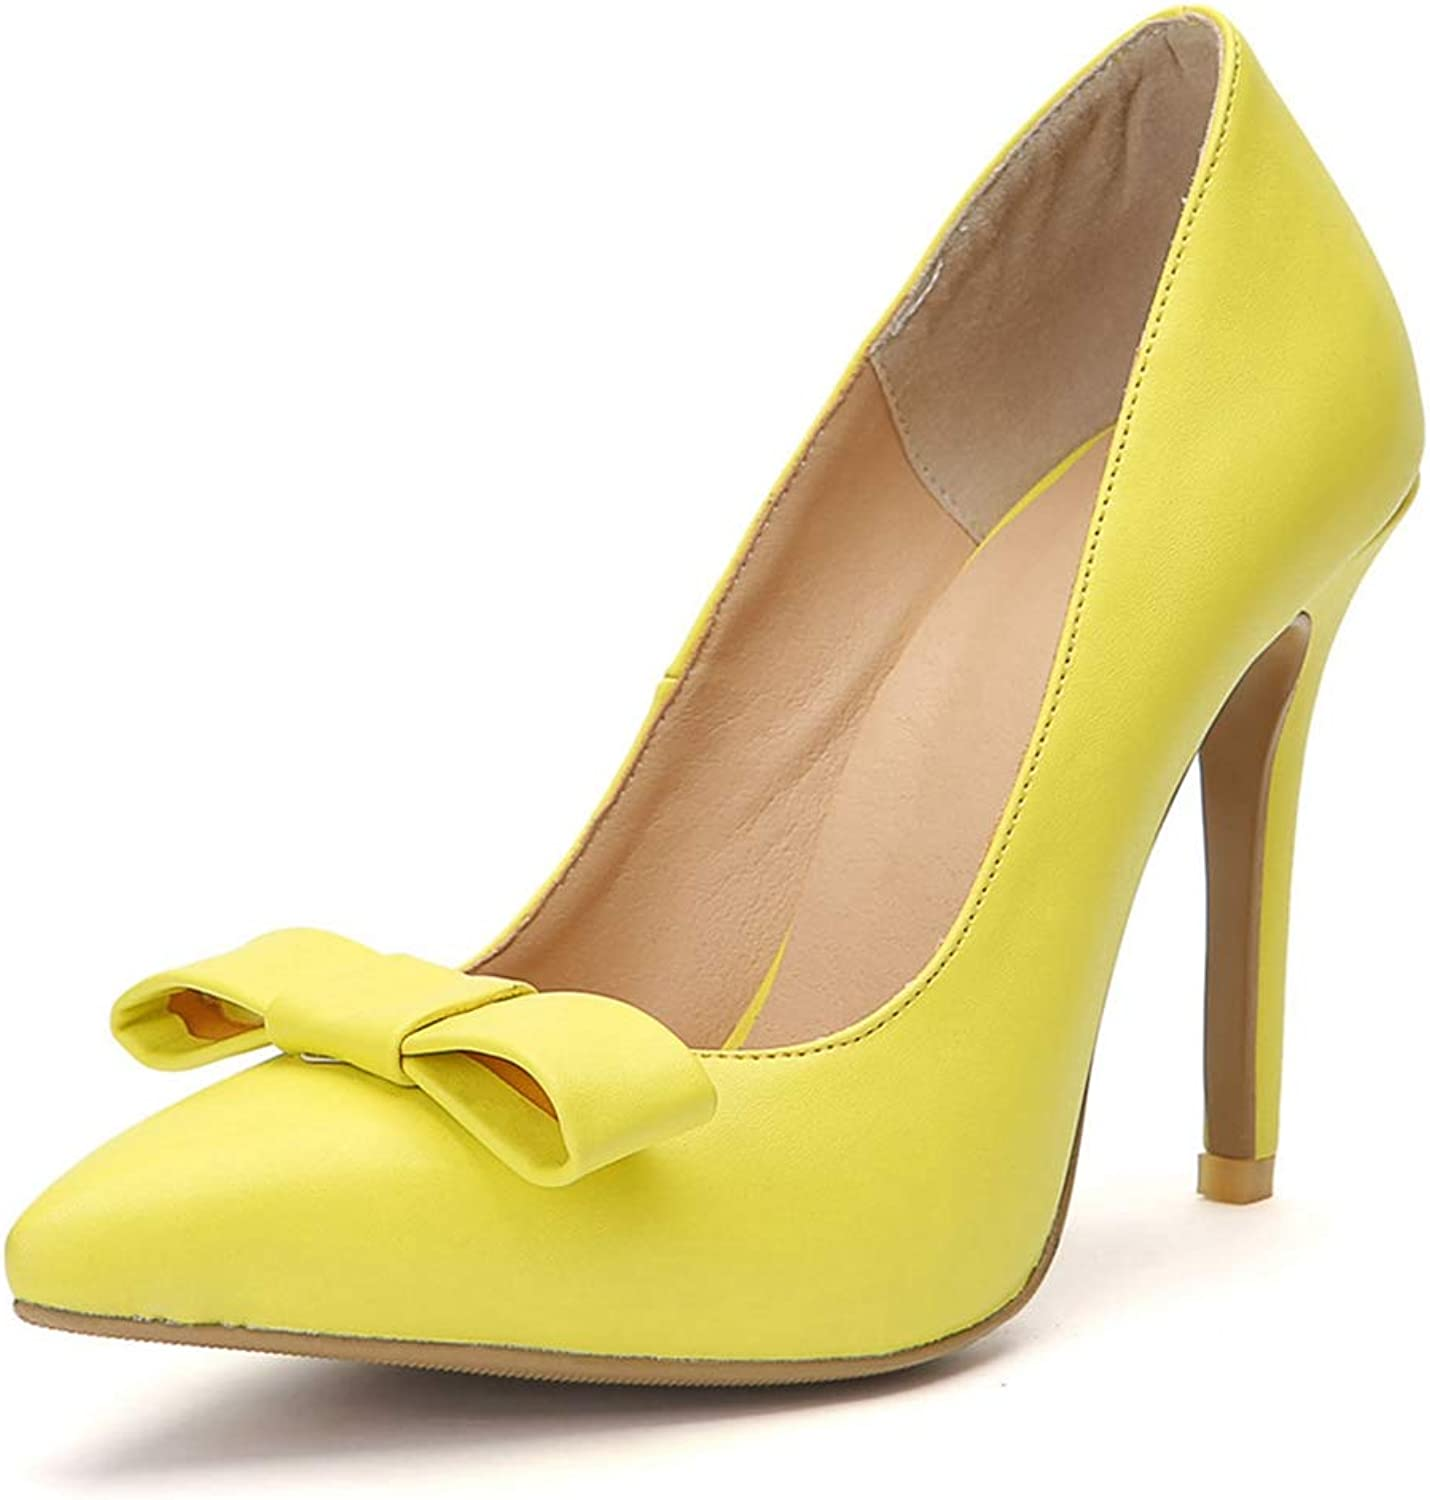 Summer Heeled Sandal Ladies High Heeled Sandals Yellow Bow Design Fashion Comfortable shoes